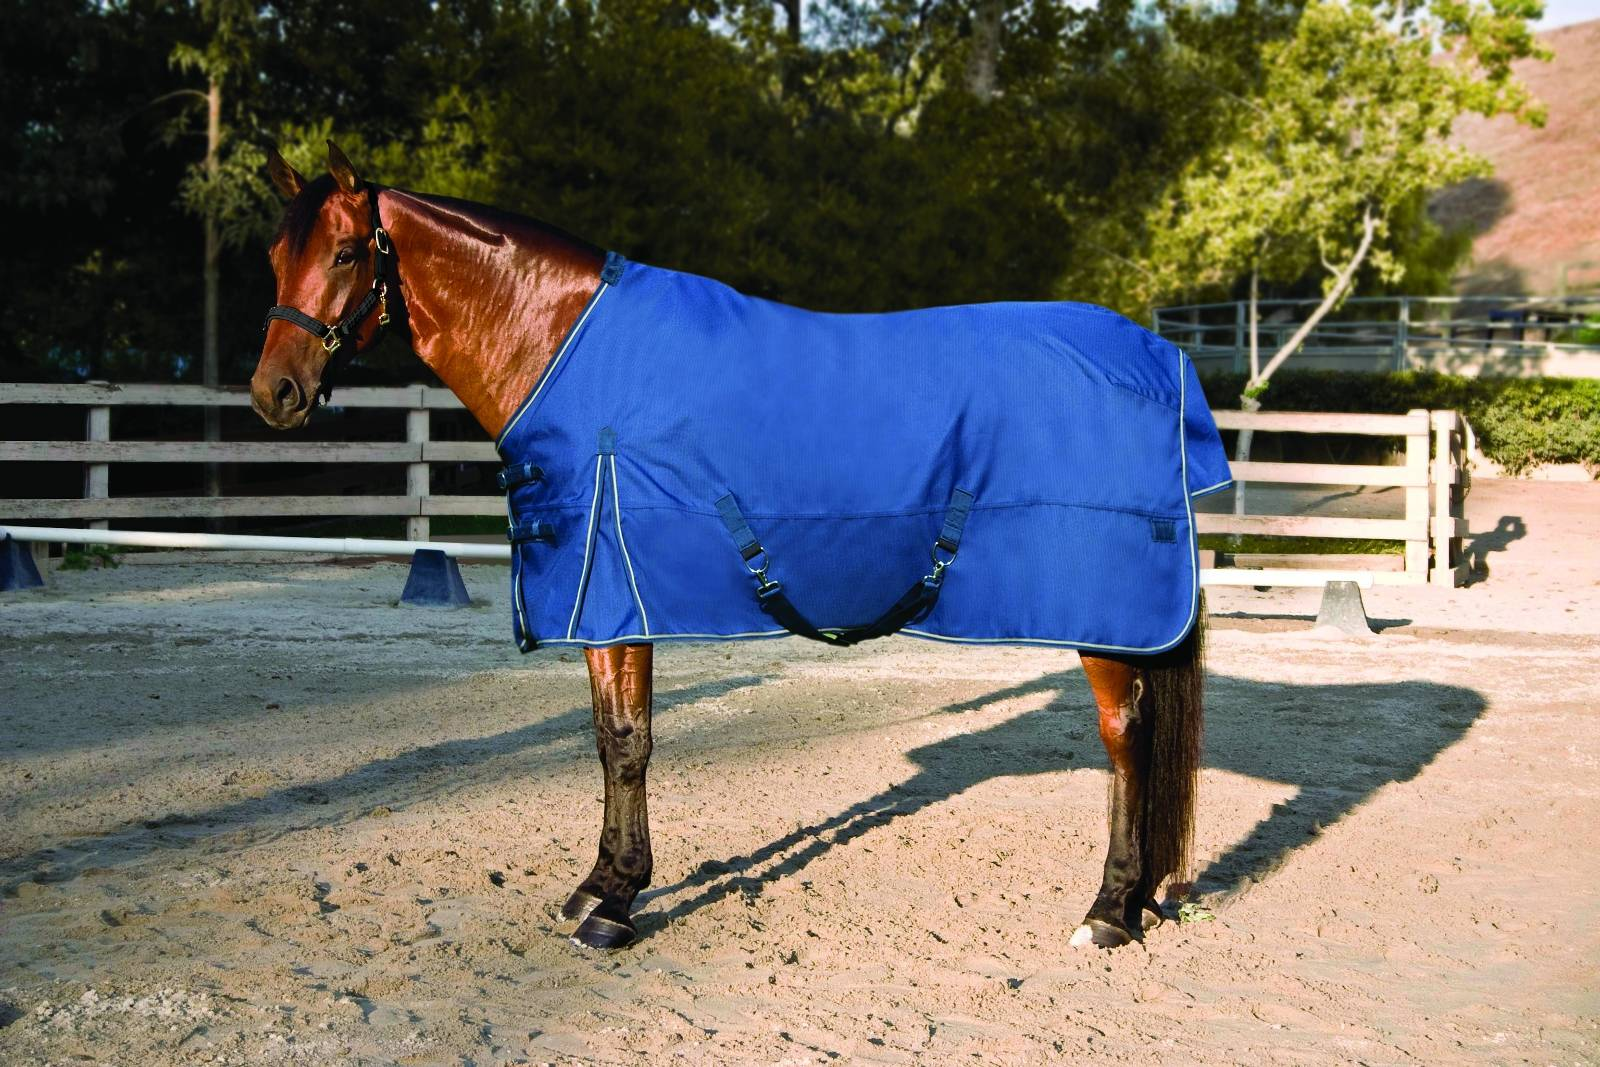 Kensington All Around HD Rain Sheet - FREE Kensington Blanket Storage Bag Valued at $45!